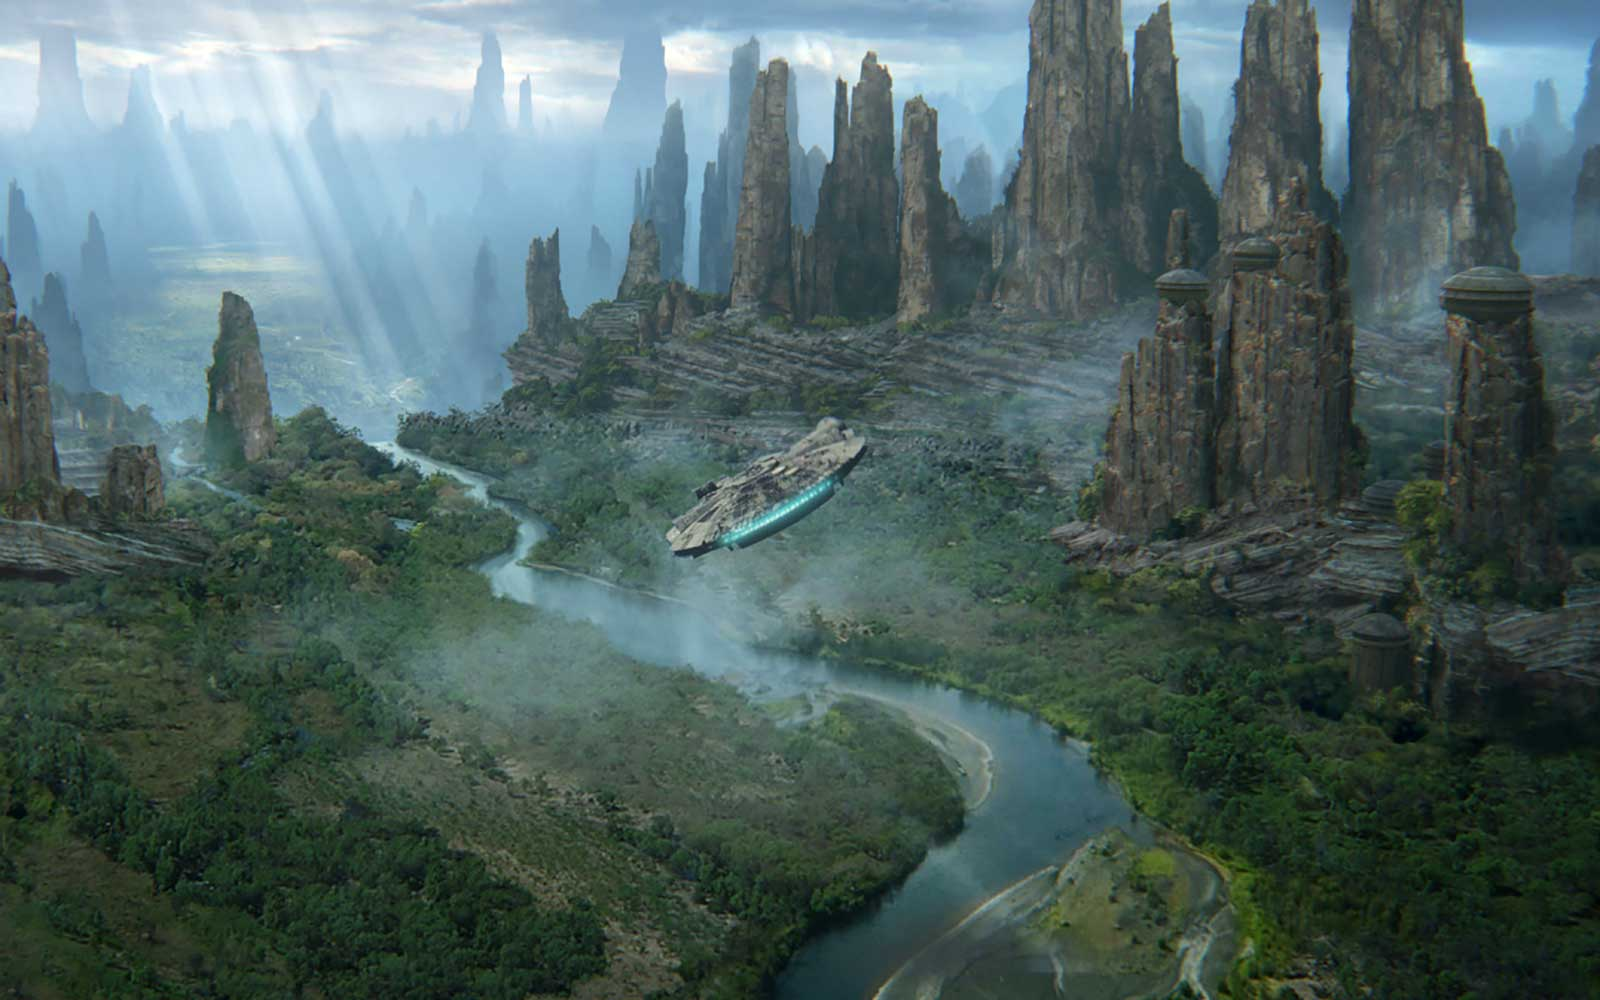 Star Wars Land Reservations Are Already Sold Out — Here's How You Can Still Get a Spot